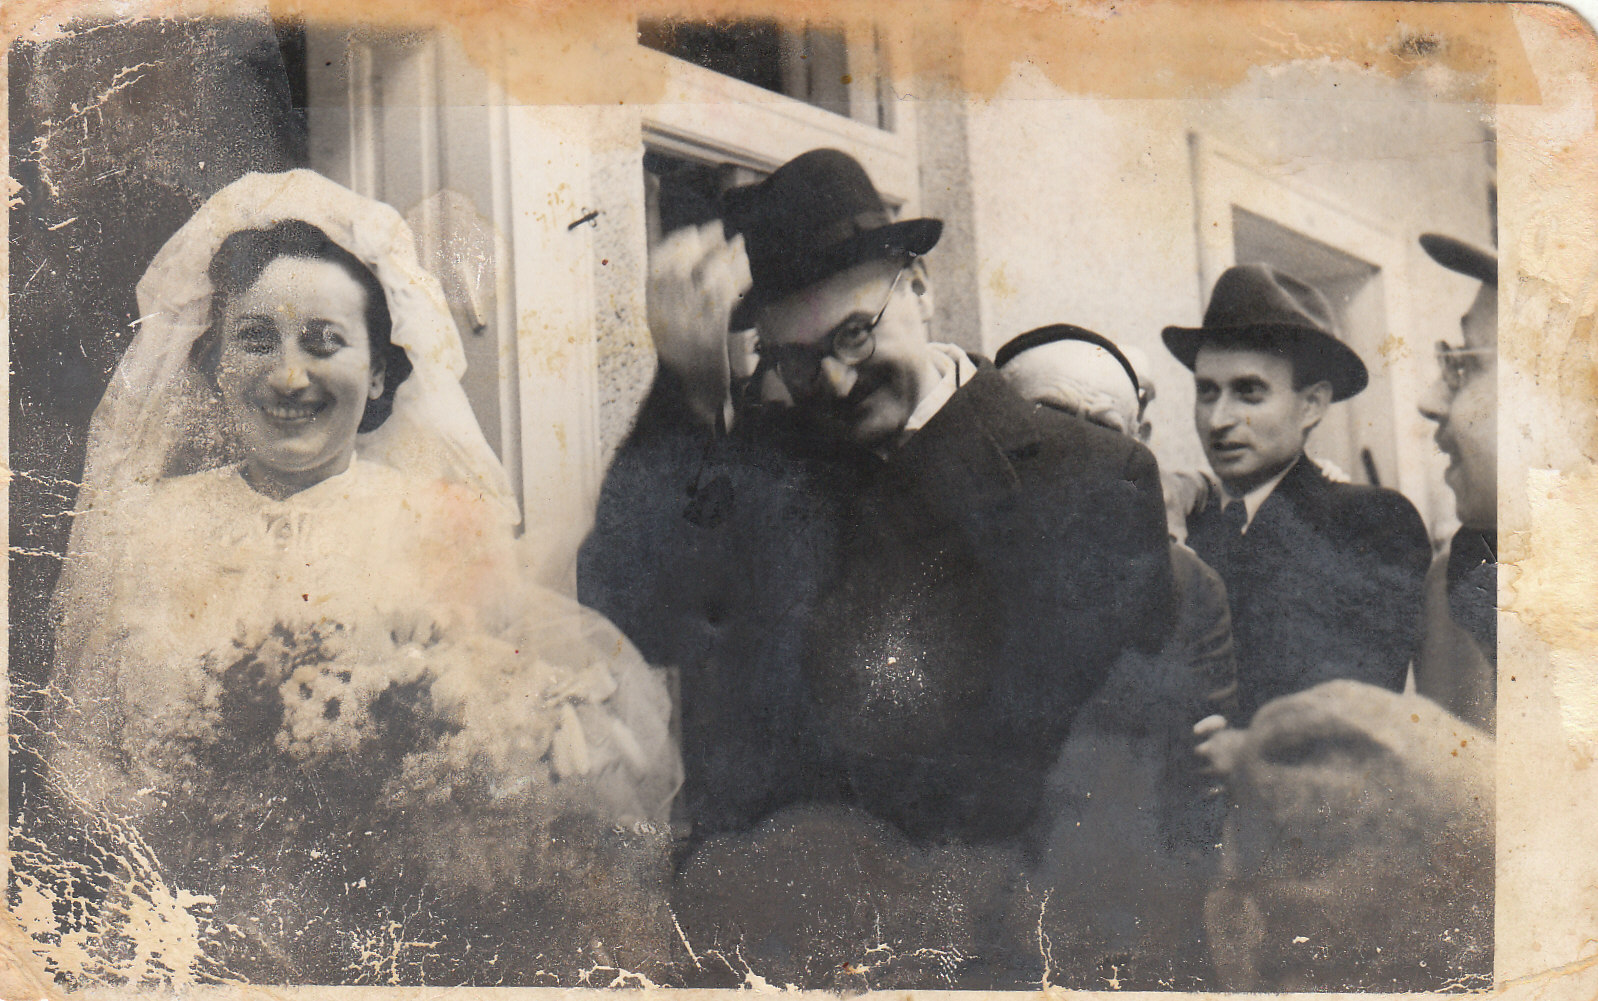 Miriam Grab's parents, Eugen and Jolan Friedmann, on their wedding day in 1940, in Tapozcany, Czechoslovakia.  (Courtesy of Miriam Grab)